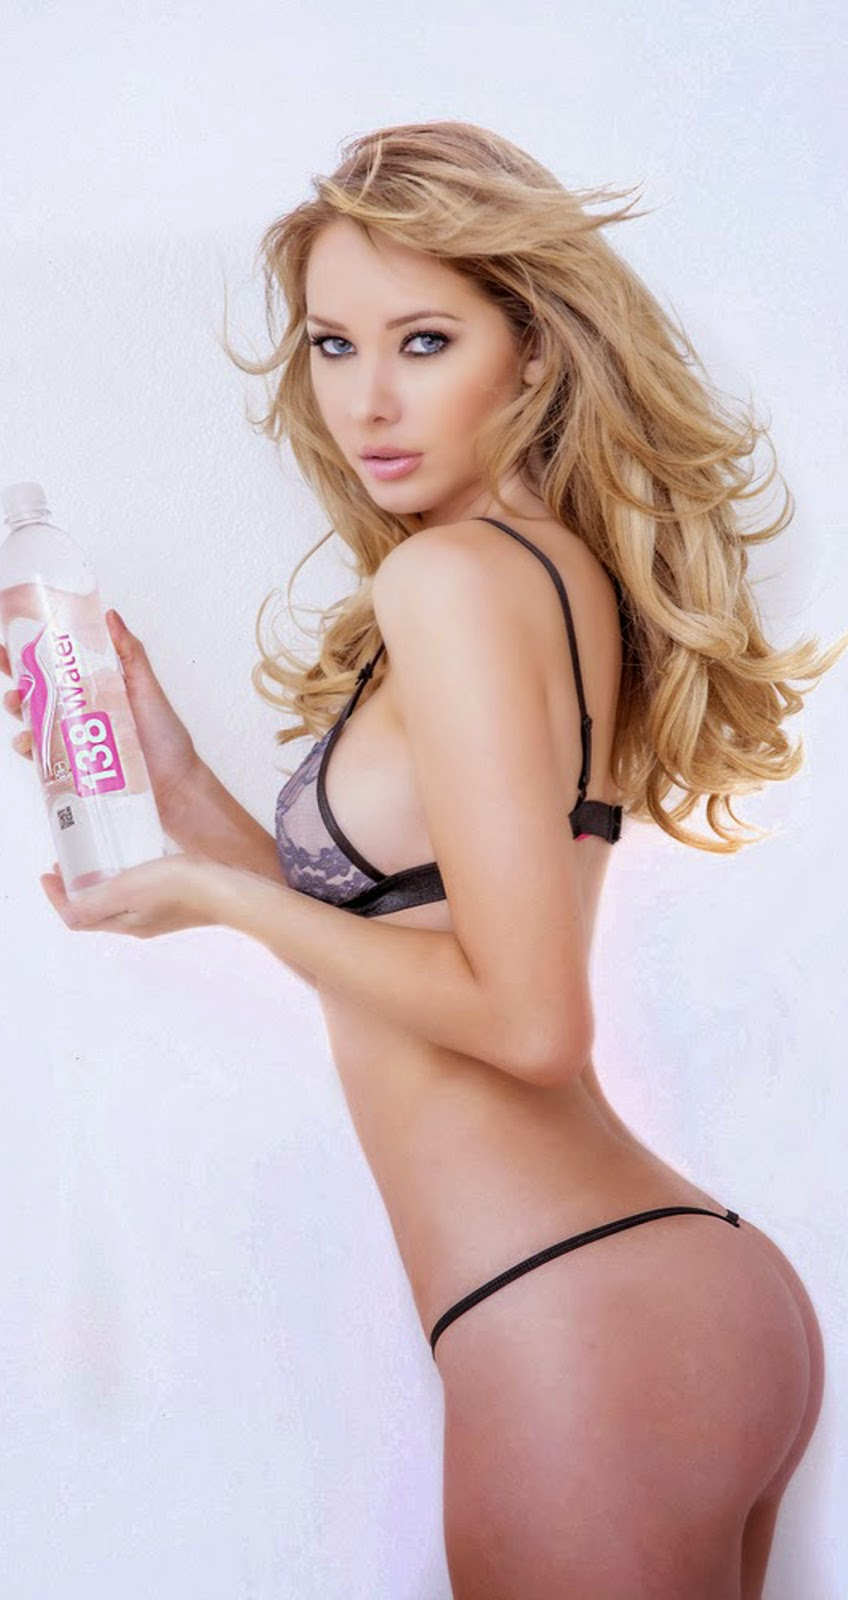 Model Tiffany Toth for 138 Water Lingerie Shoot 2013 002